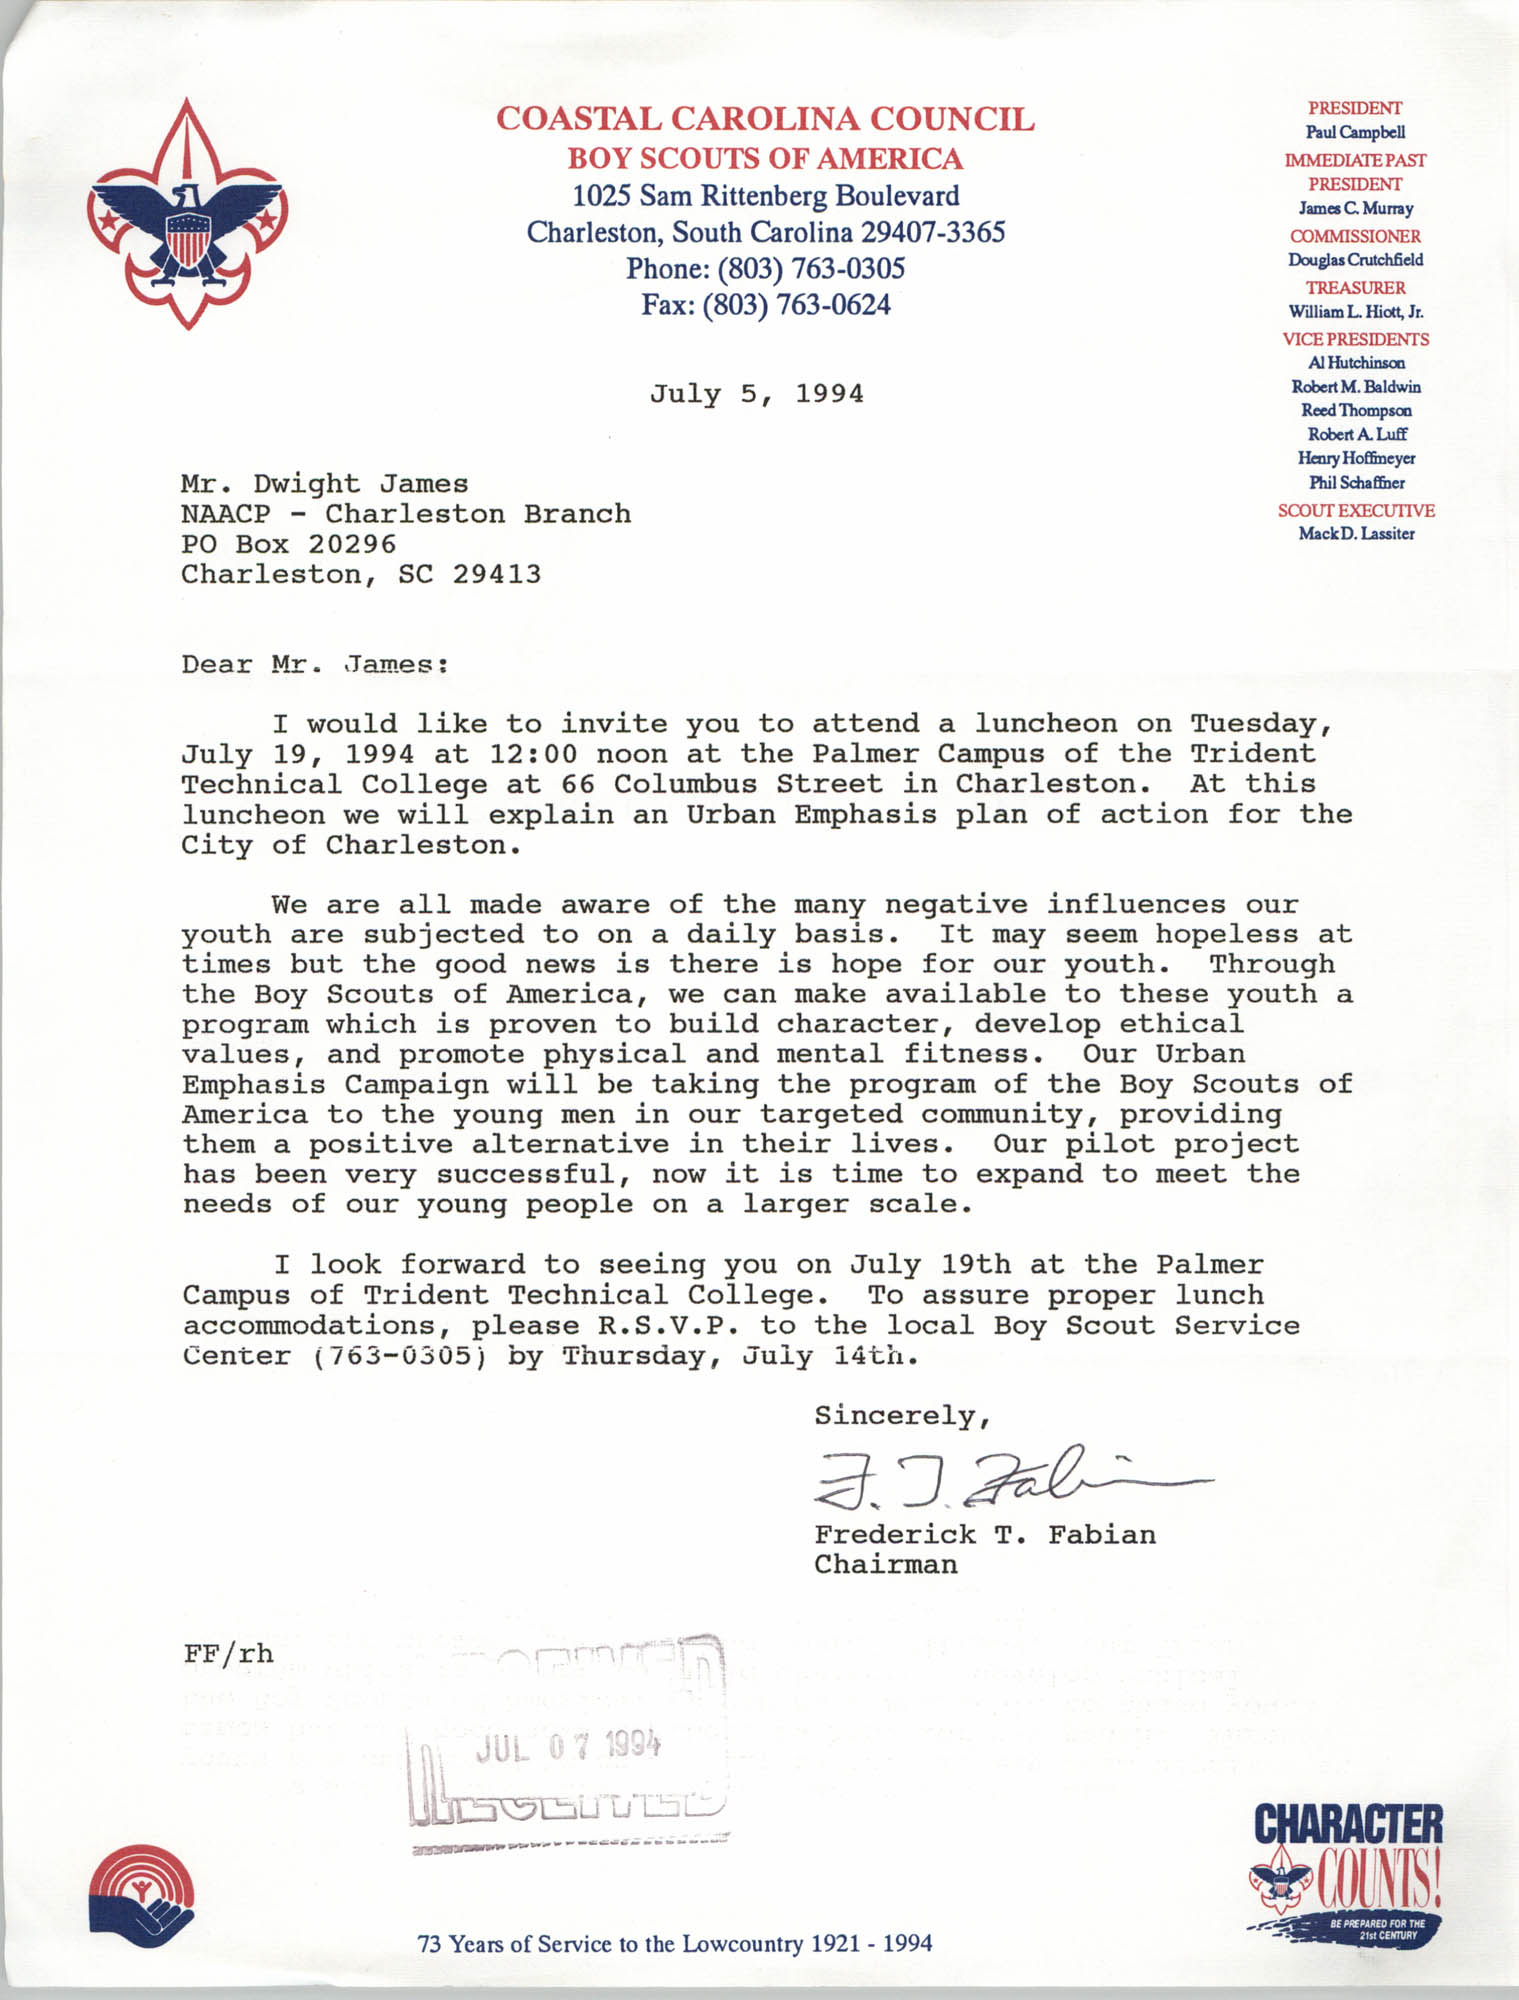 Letter from Frederick T. Fabian to Dwight James, July 5, 1994